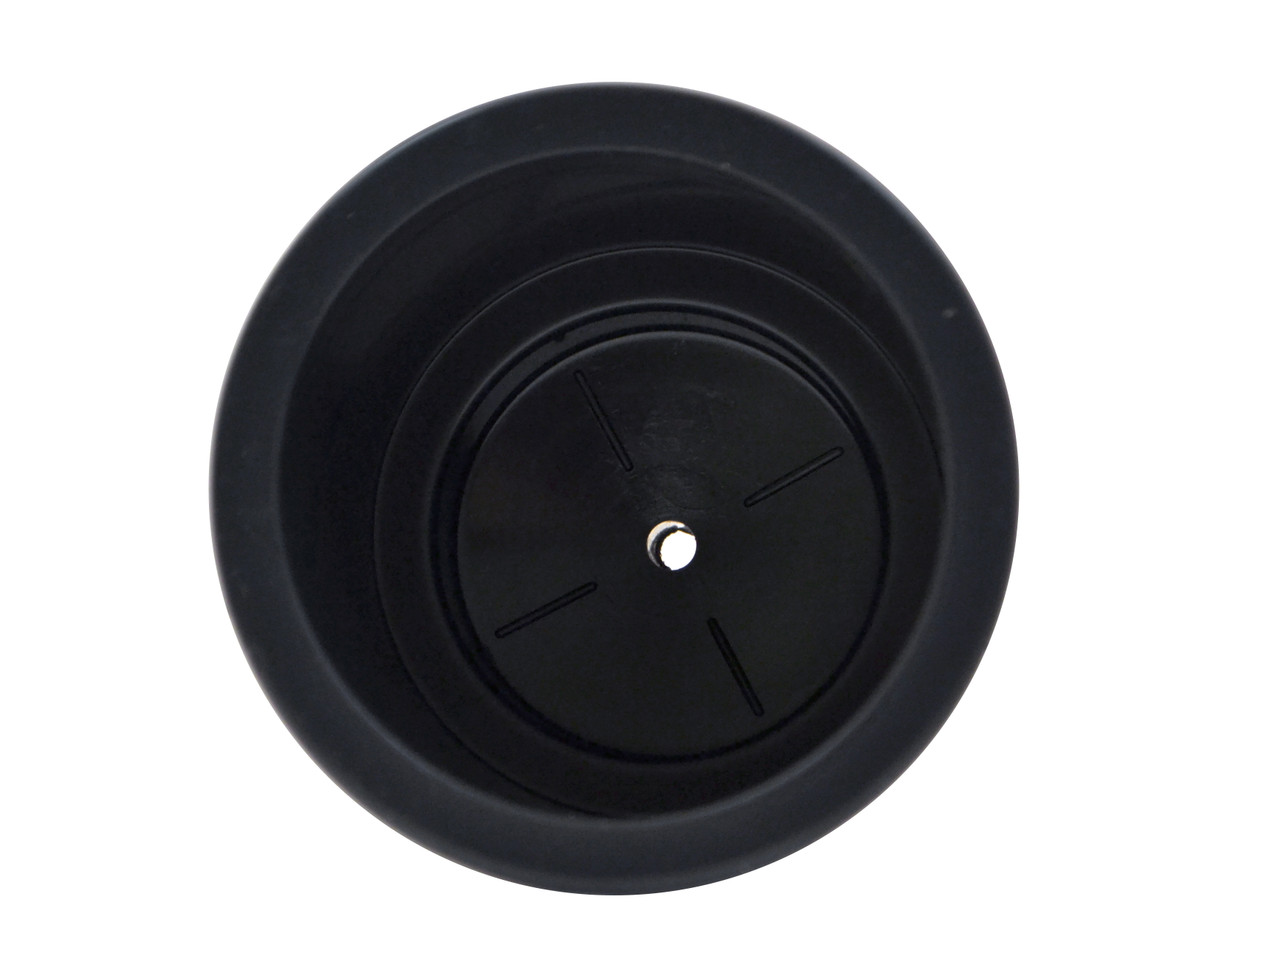 """For Both Indoor and Outdoor Installation, Replacement Cup For Many Brands, 3-3/4"""" Tall  x 4-1/3"""" Outside Diameter, Fits Cans, Bottles, and Glasses, Can Be Connected to Tubing for Precision Drain"""